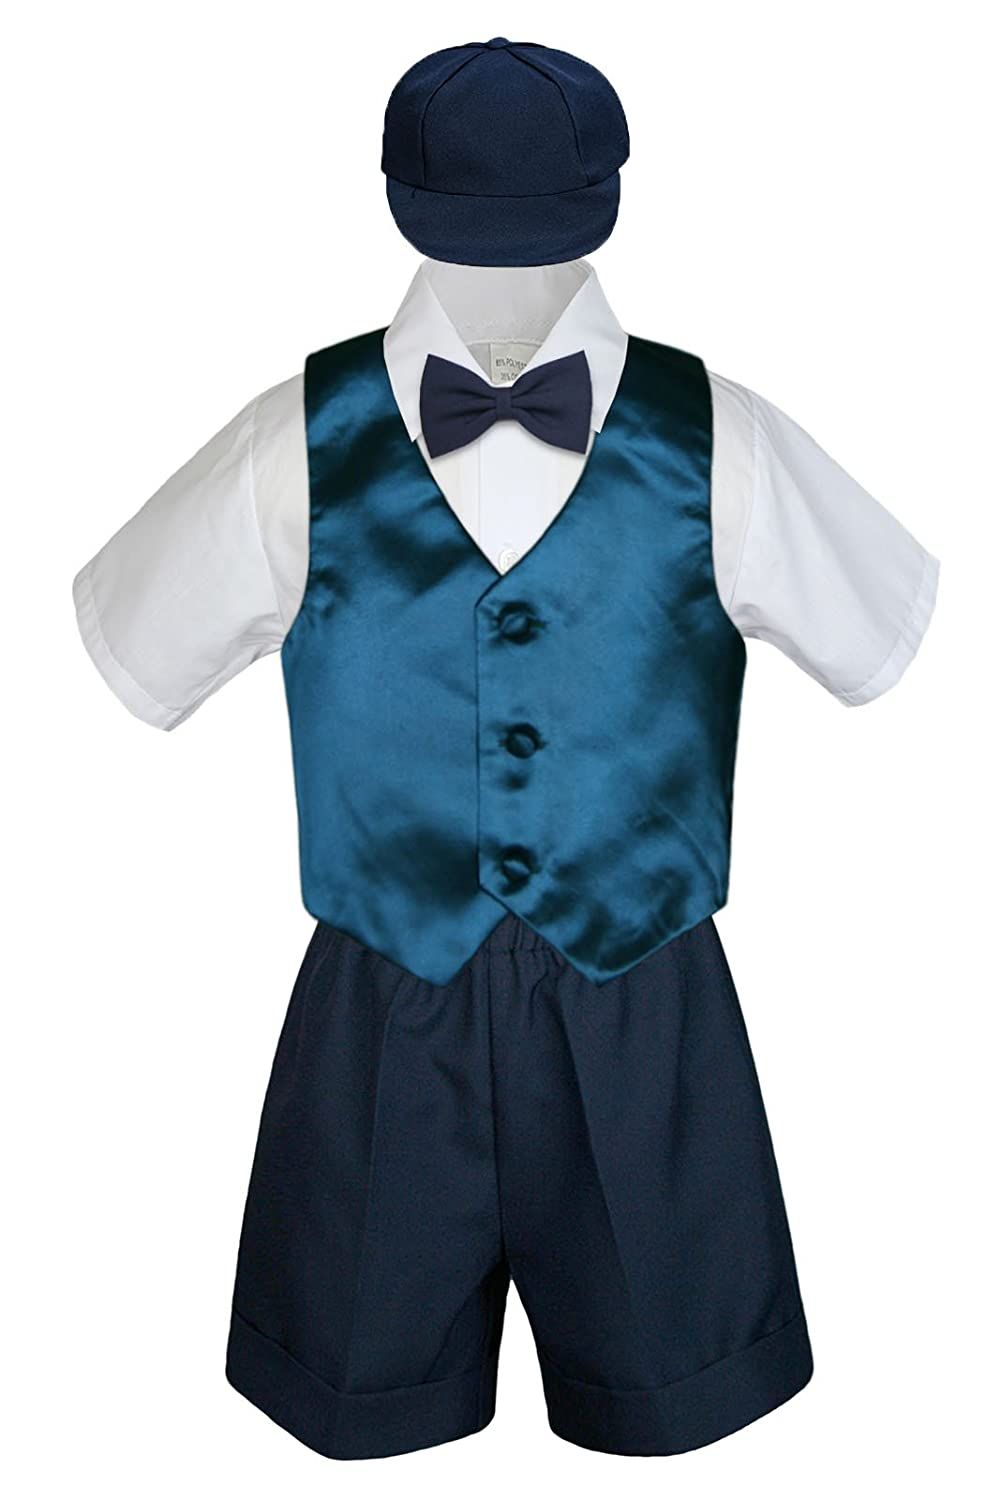 2T Leadertux 5pc Formal Baby Toddler Boys Green Teal Vest Navy Shorts Suit Hat S-4T